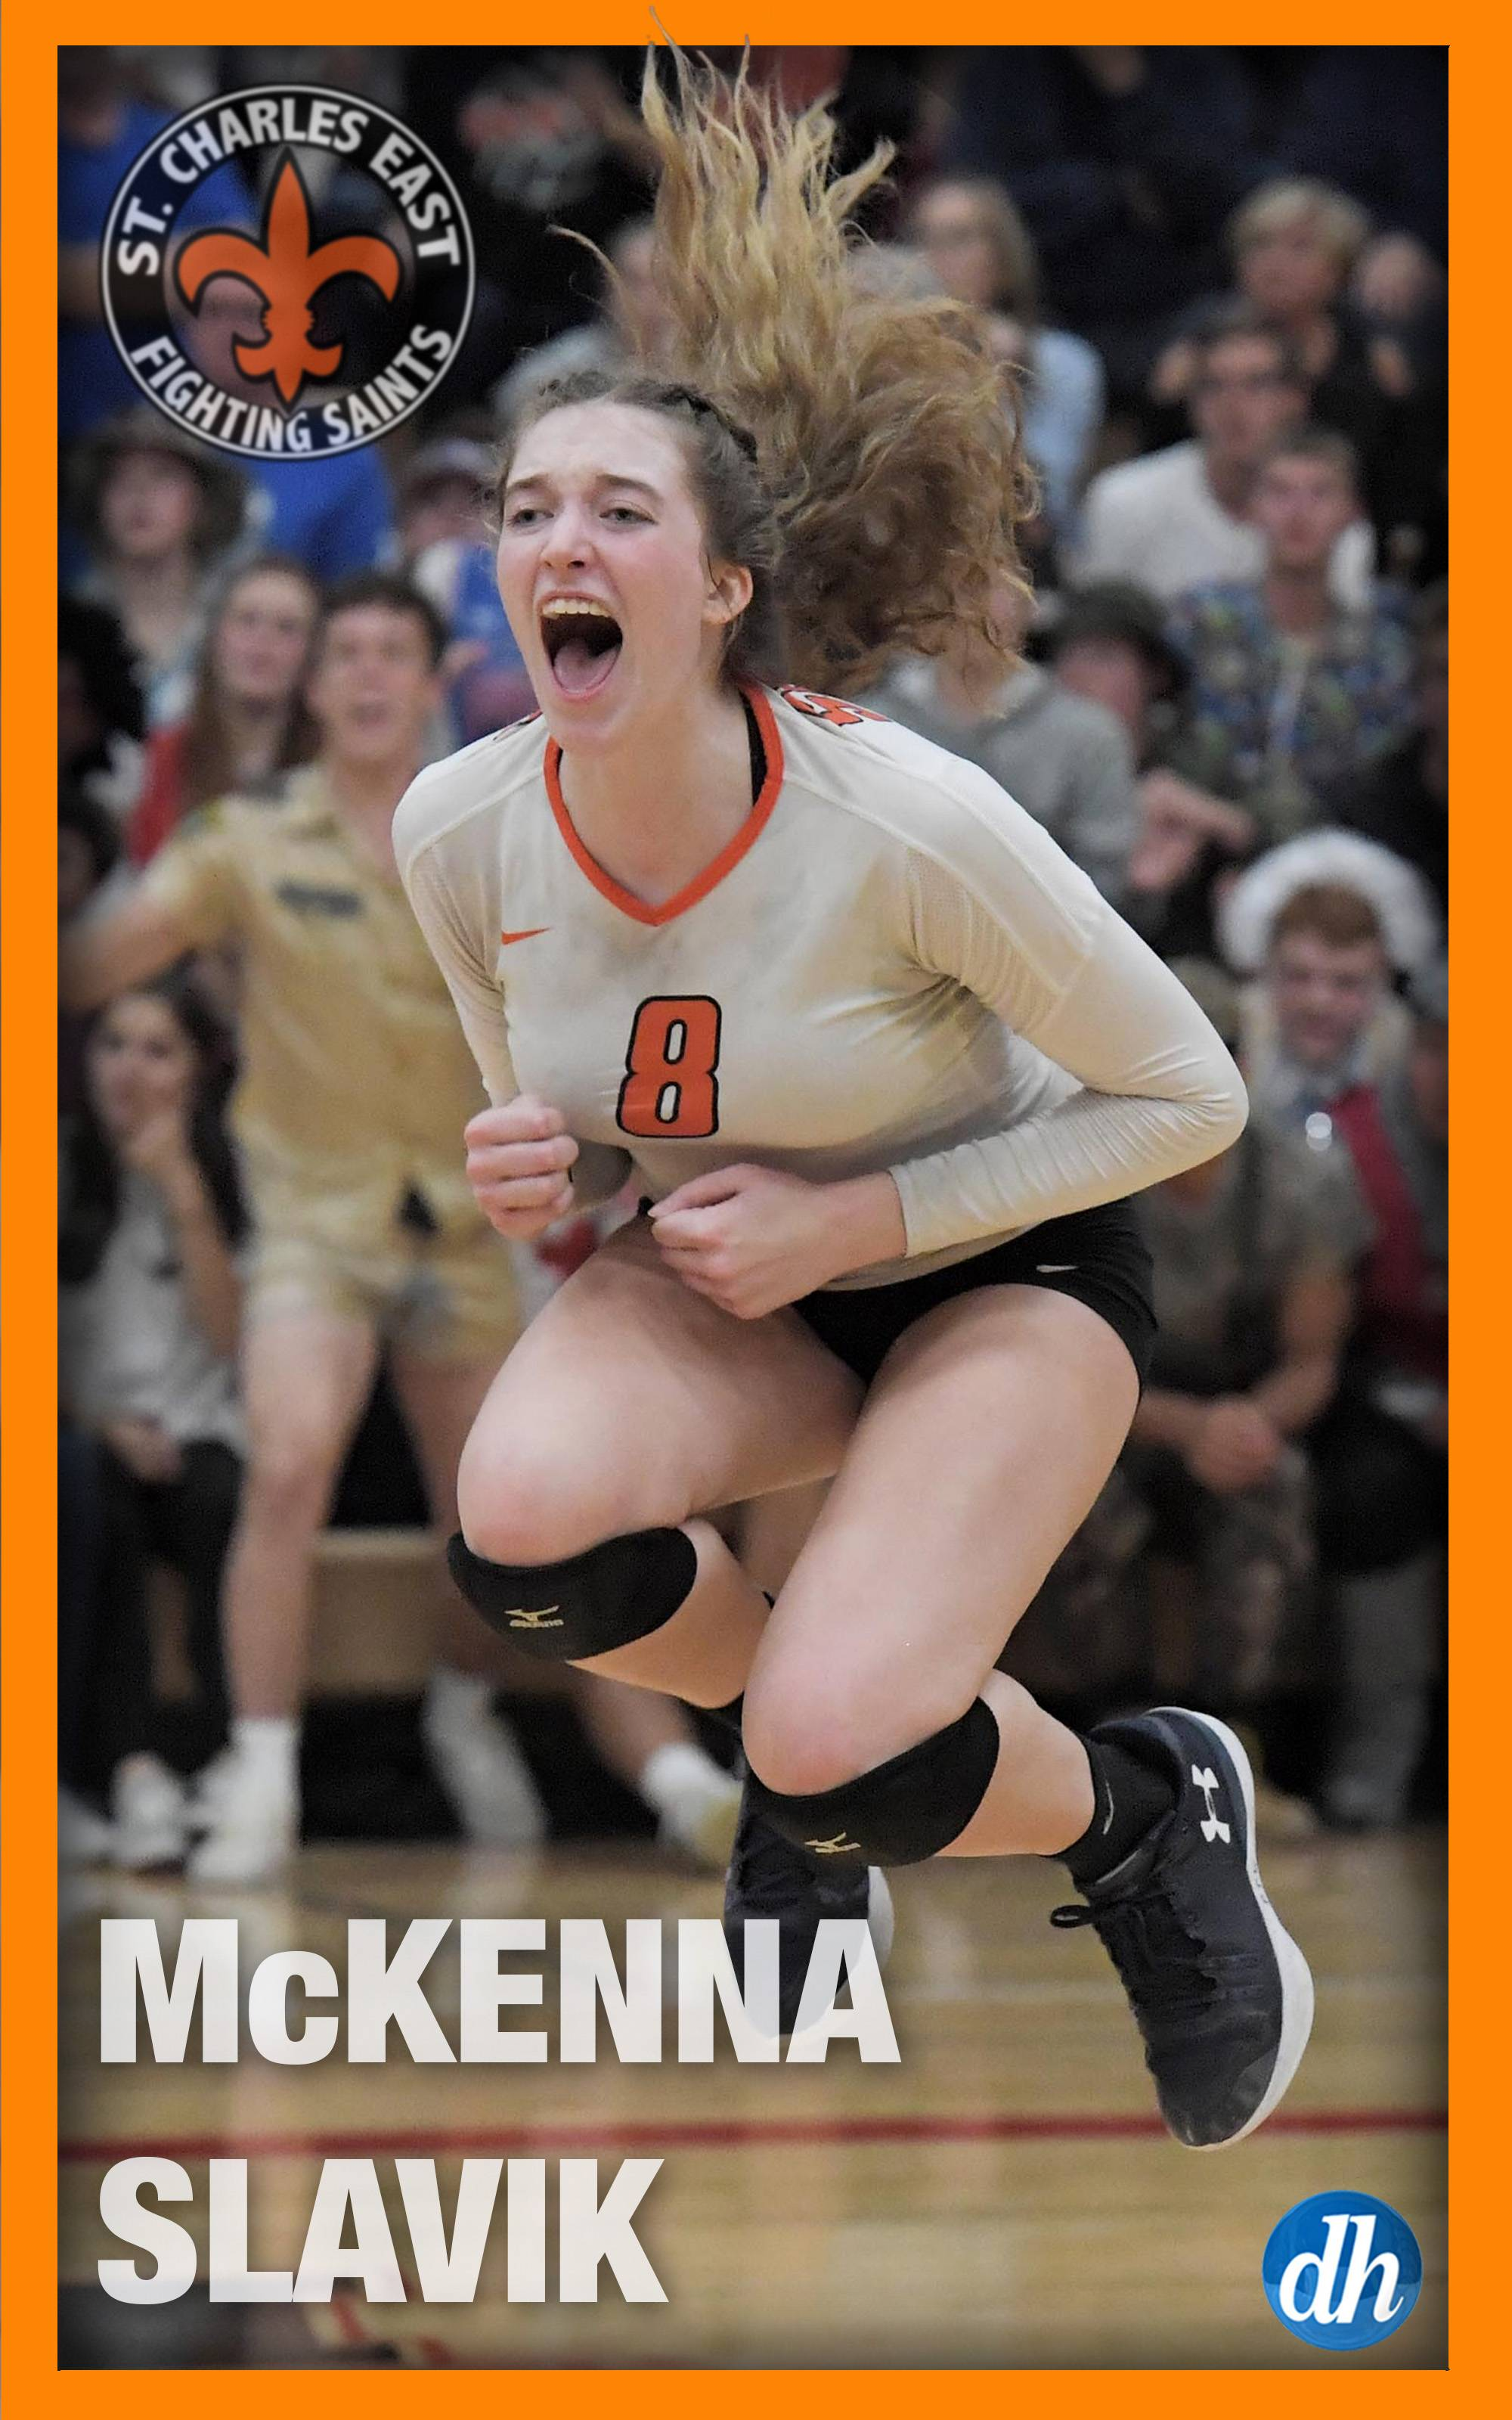 McKenna Slavic of St. Charles East High School is the All-Area Team Captain in girls volleyball in the Fox Valley.